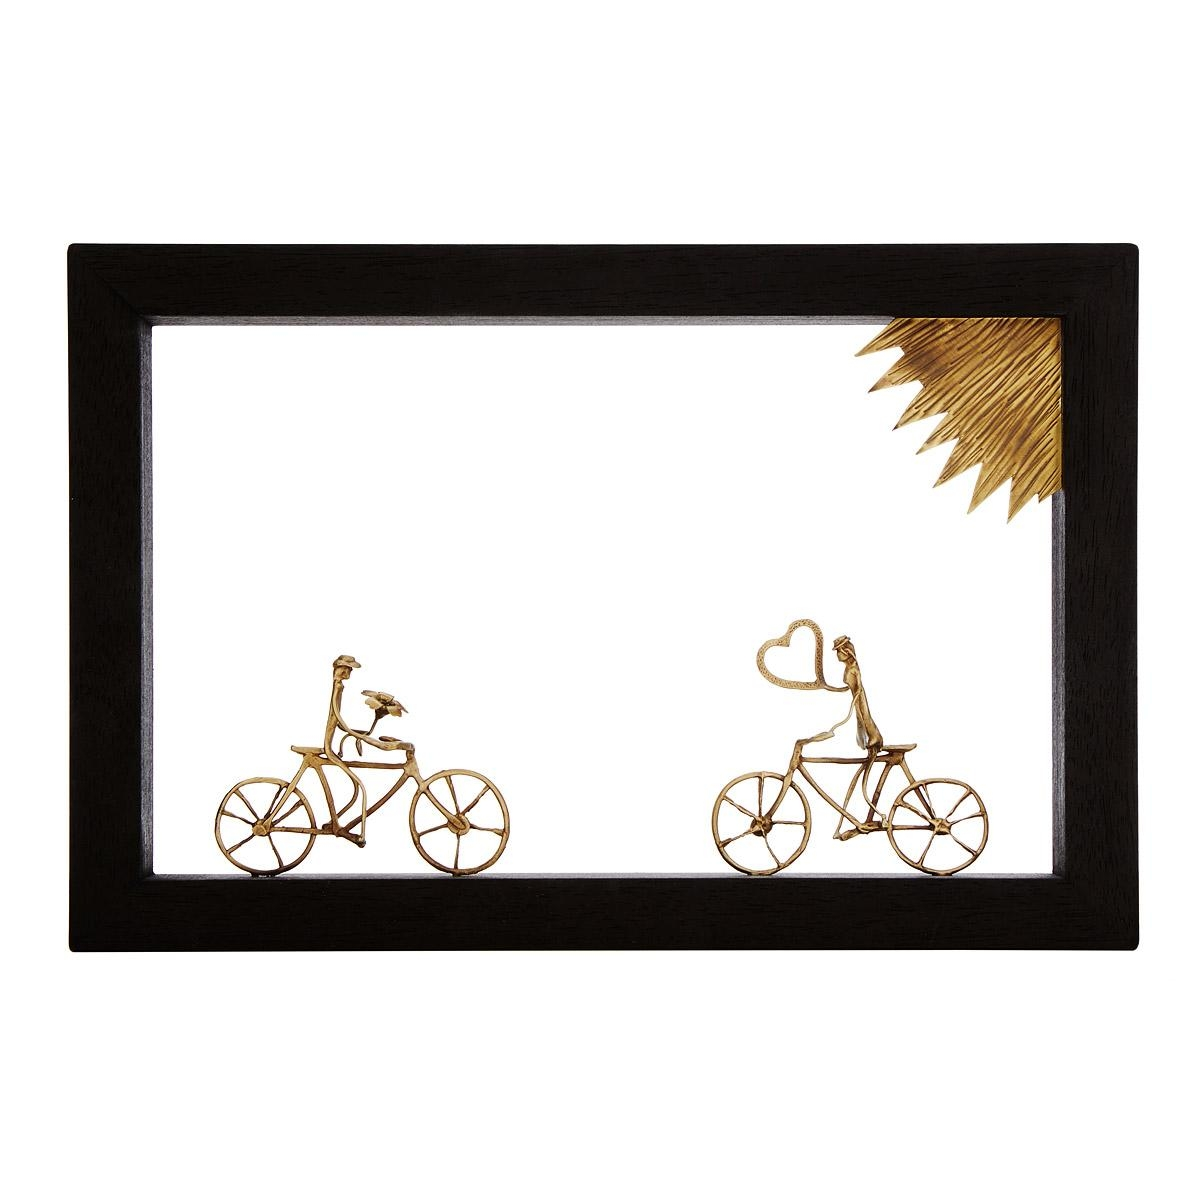 Bike Lovers Wall Sculpture | Bike Art | Uncommongoods With Bicycle Metal Wall Art (View 18 of 20)